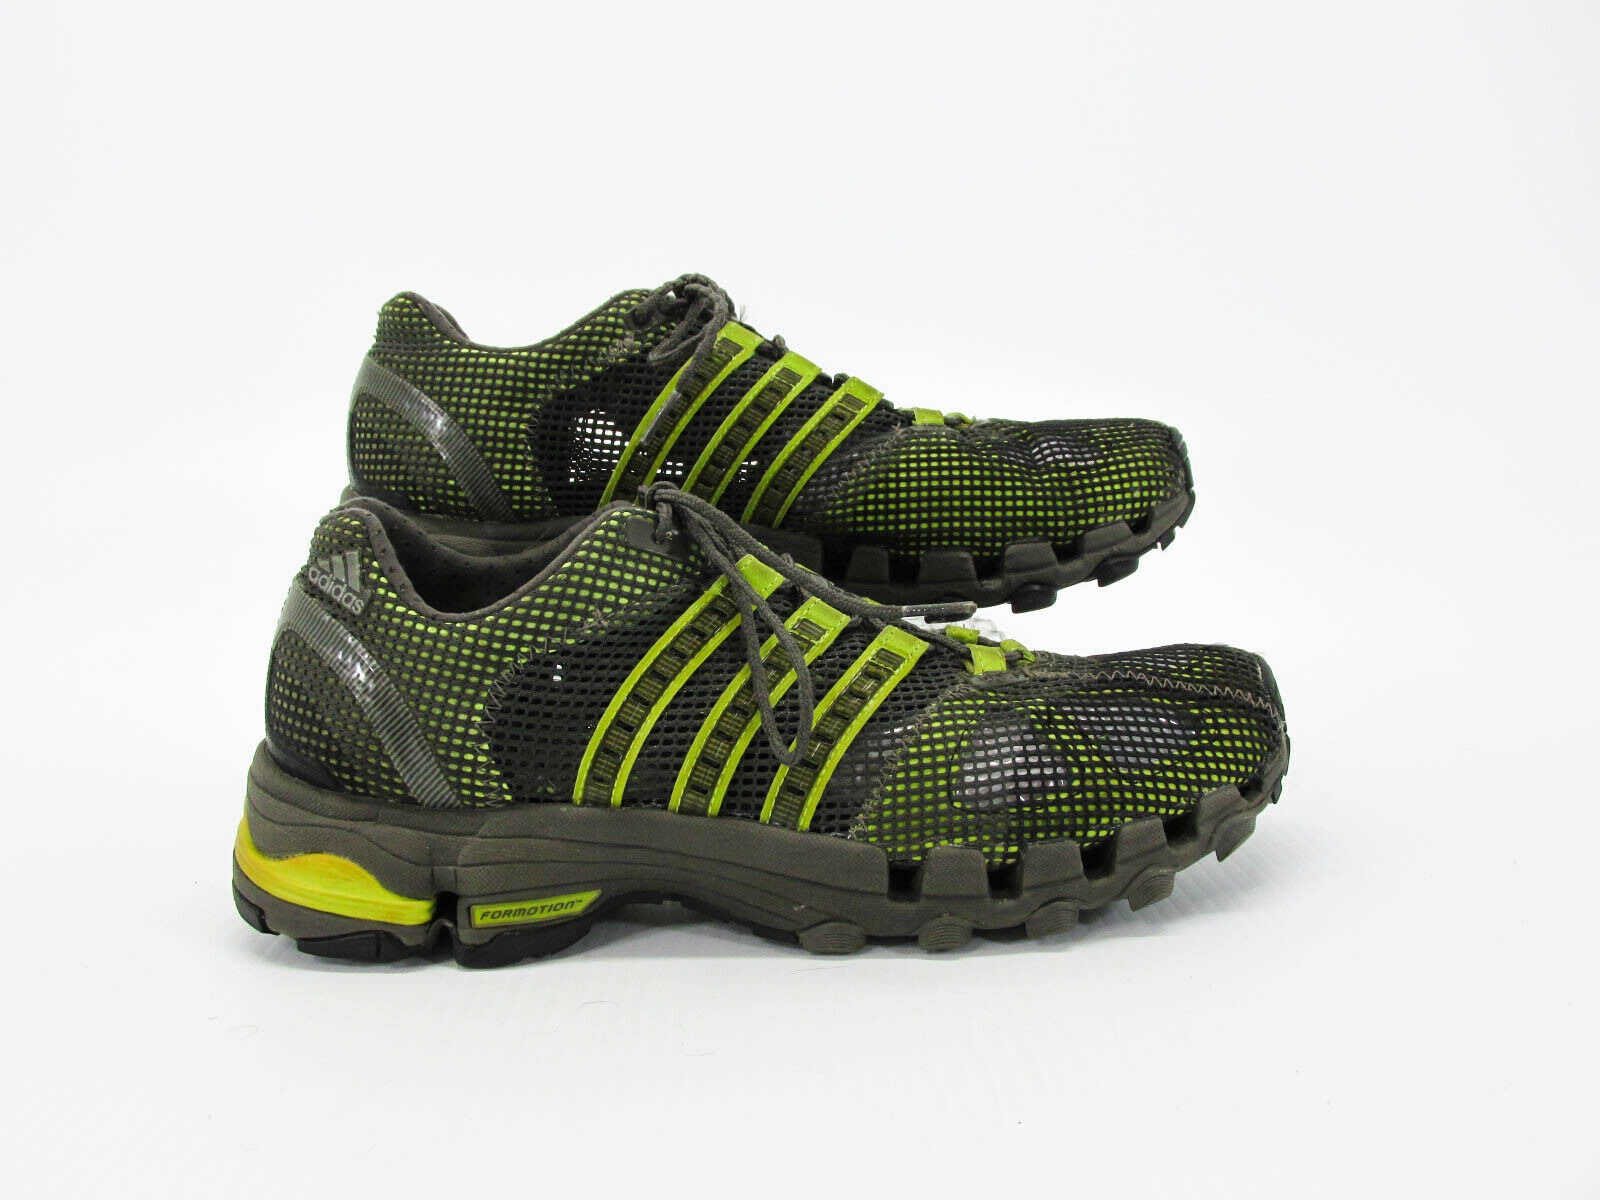 Adidas TR Men Athletic Hiking shoes Size 11m Pre Owned PJ